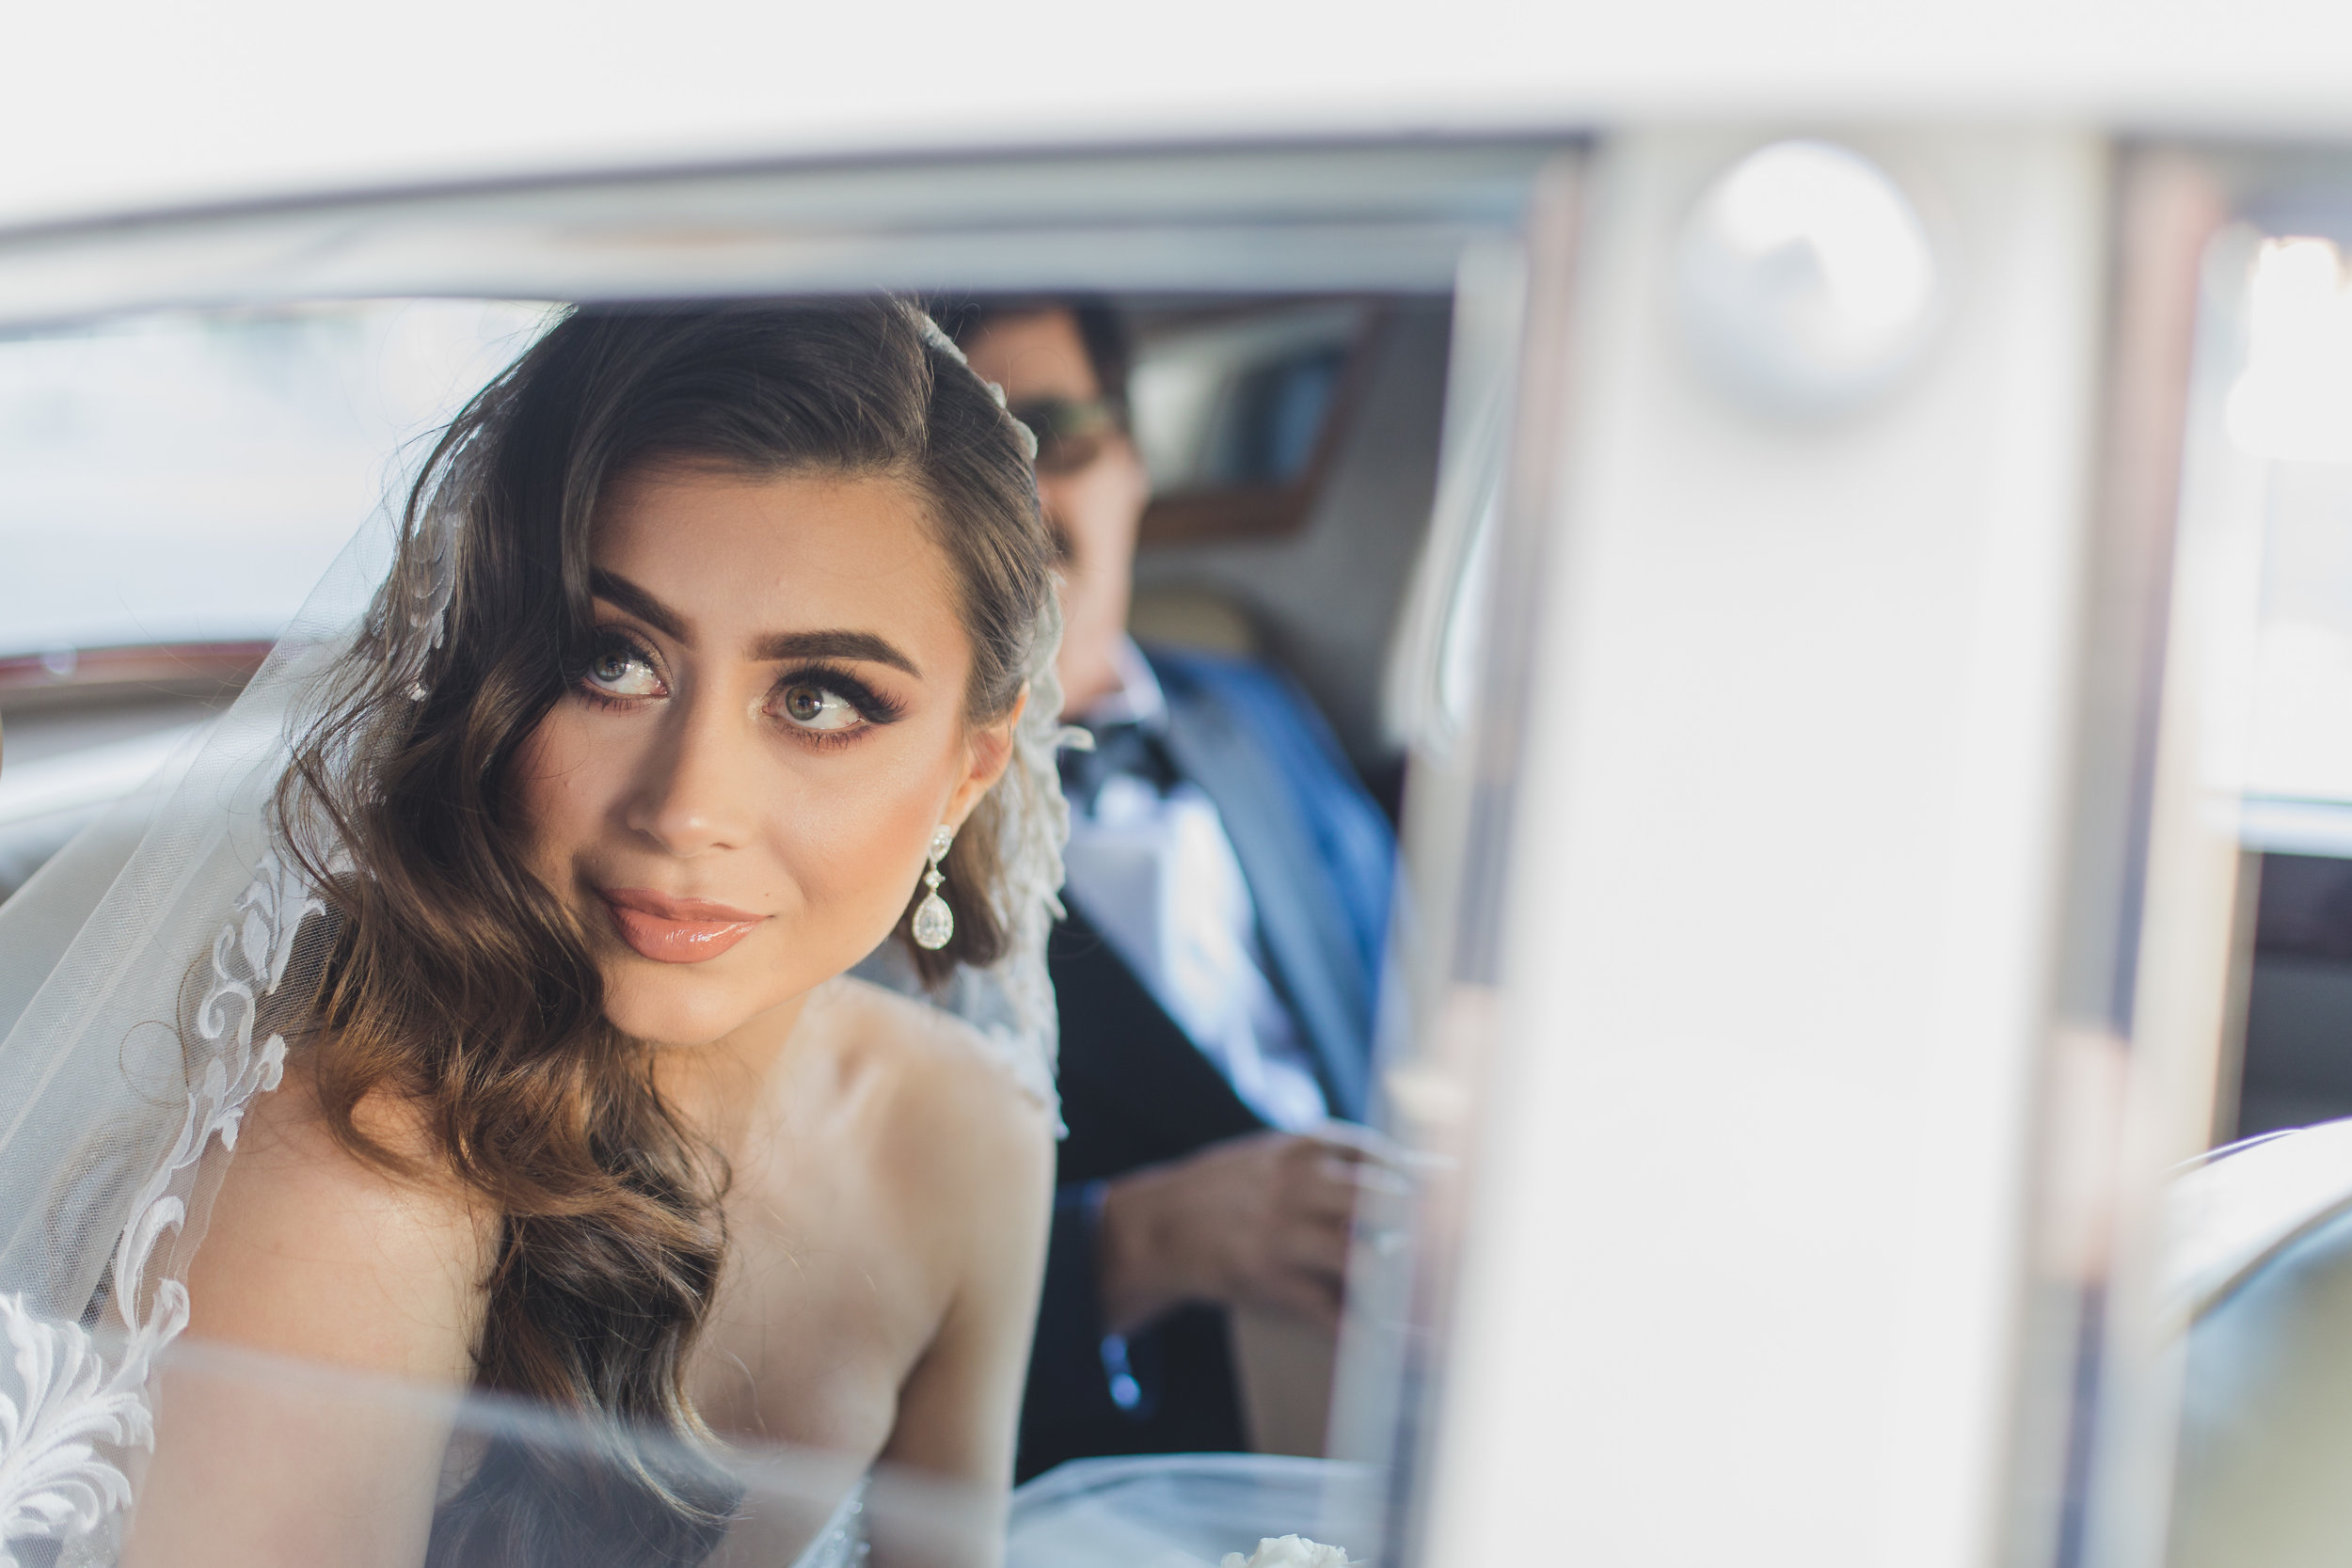 A bride seated in a vintage car and staring through the open window.